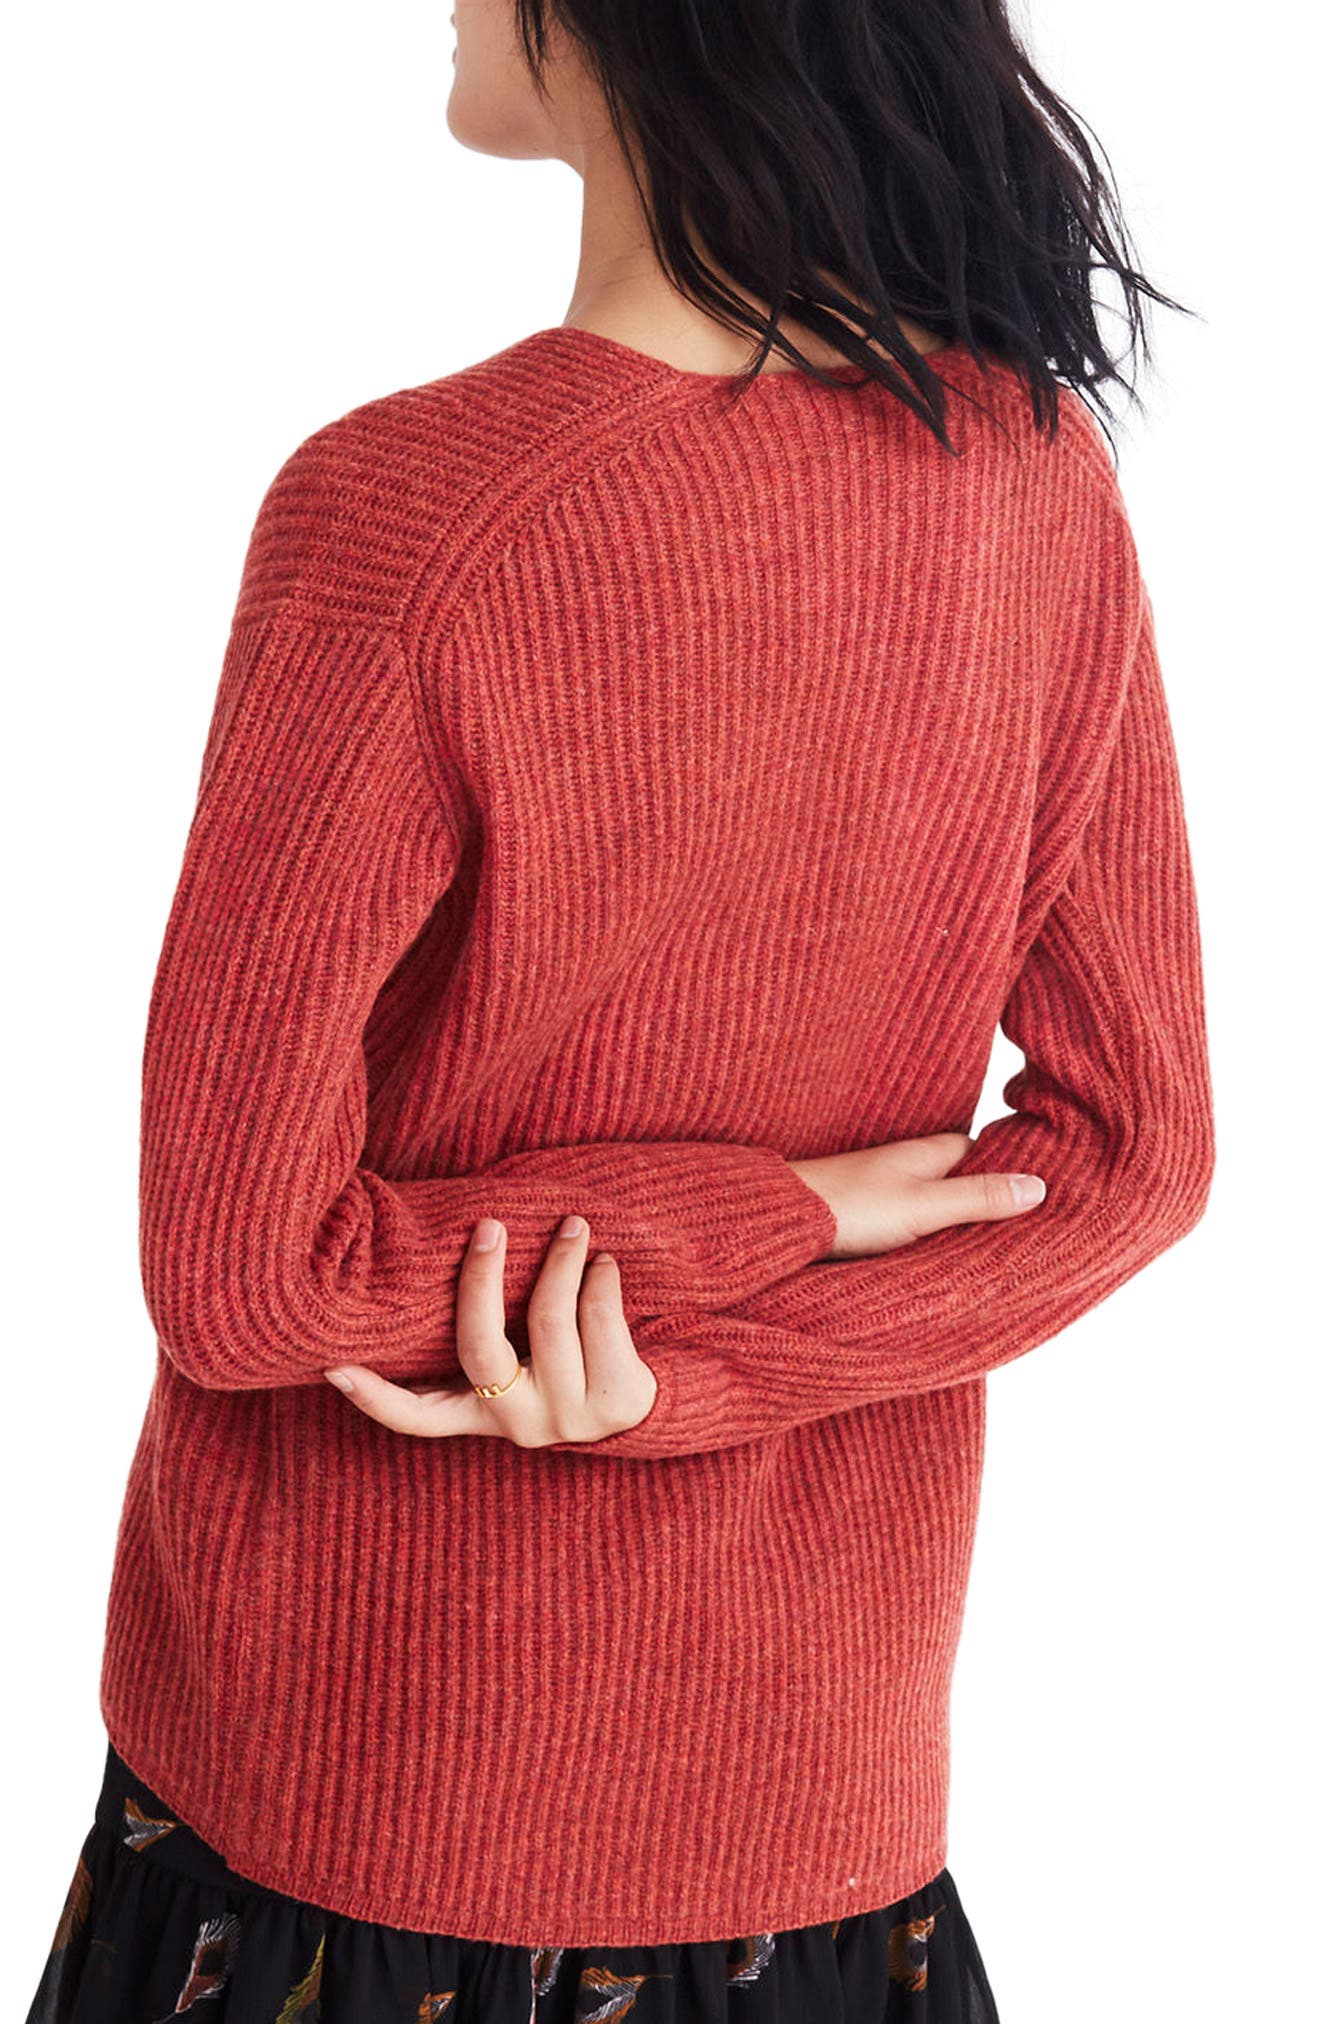 Woodside Pullover Sweater,                             Alternate thumbnail 10, color,